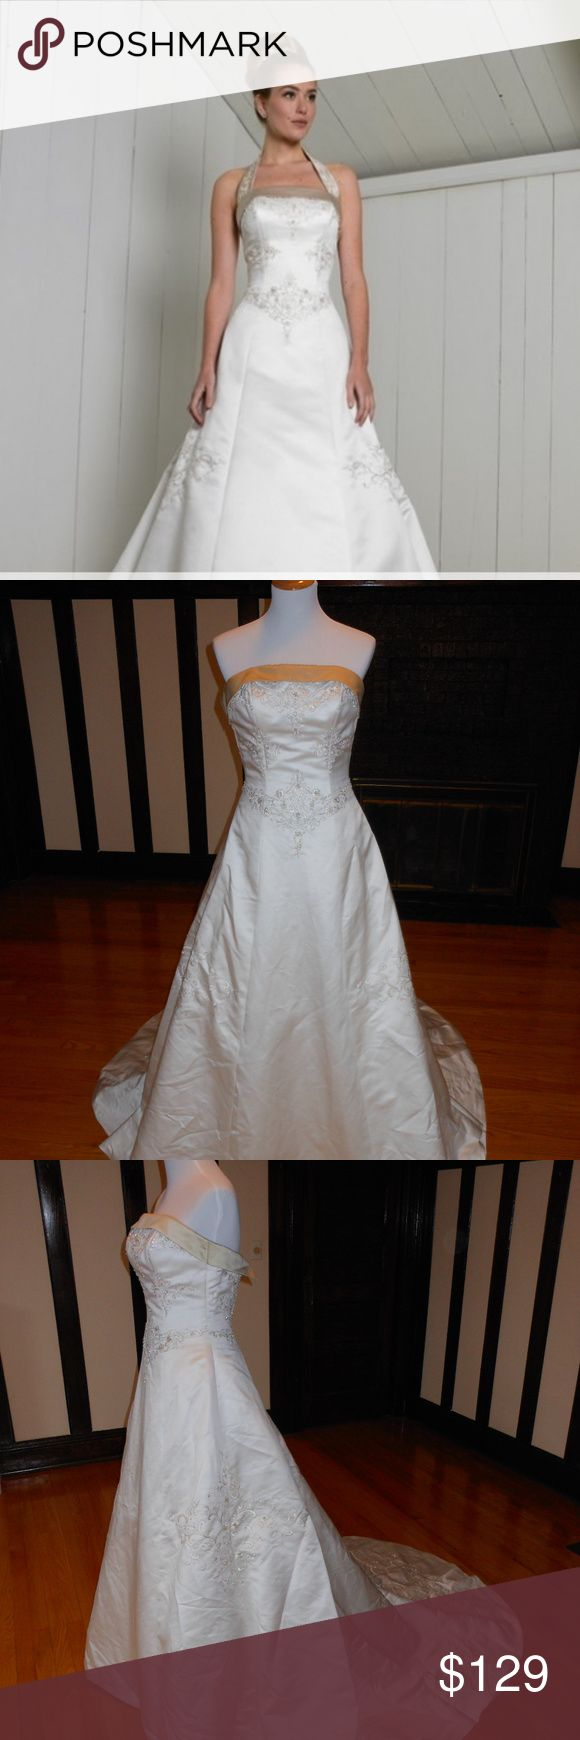 """Sincerity Bridal Wedding Dress 3458 This is an Authentic SINCERITY Bridal Wedding Dress Gown. The style number of the dress is 3458. It has a gorgeous A line style with a fabulous long train.  It does not come with the removable straps. This dress is brand new in great condition with the original label. It was never worn.  Size: 4 Bust: 34"""" Waist: 27"""" Hips: free  Color: Ivory/Taupe Sincerity Bridal Dresses Wedding"""